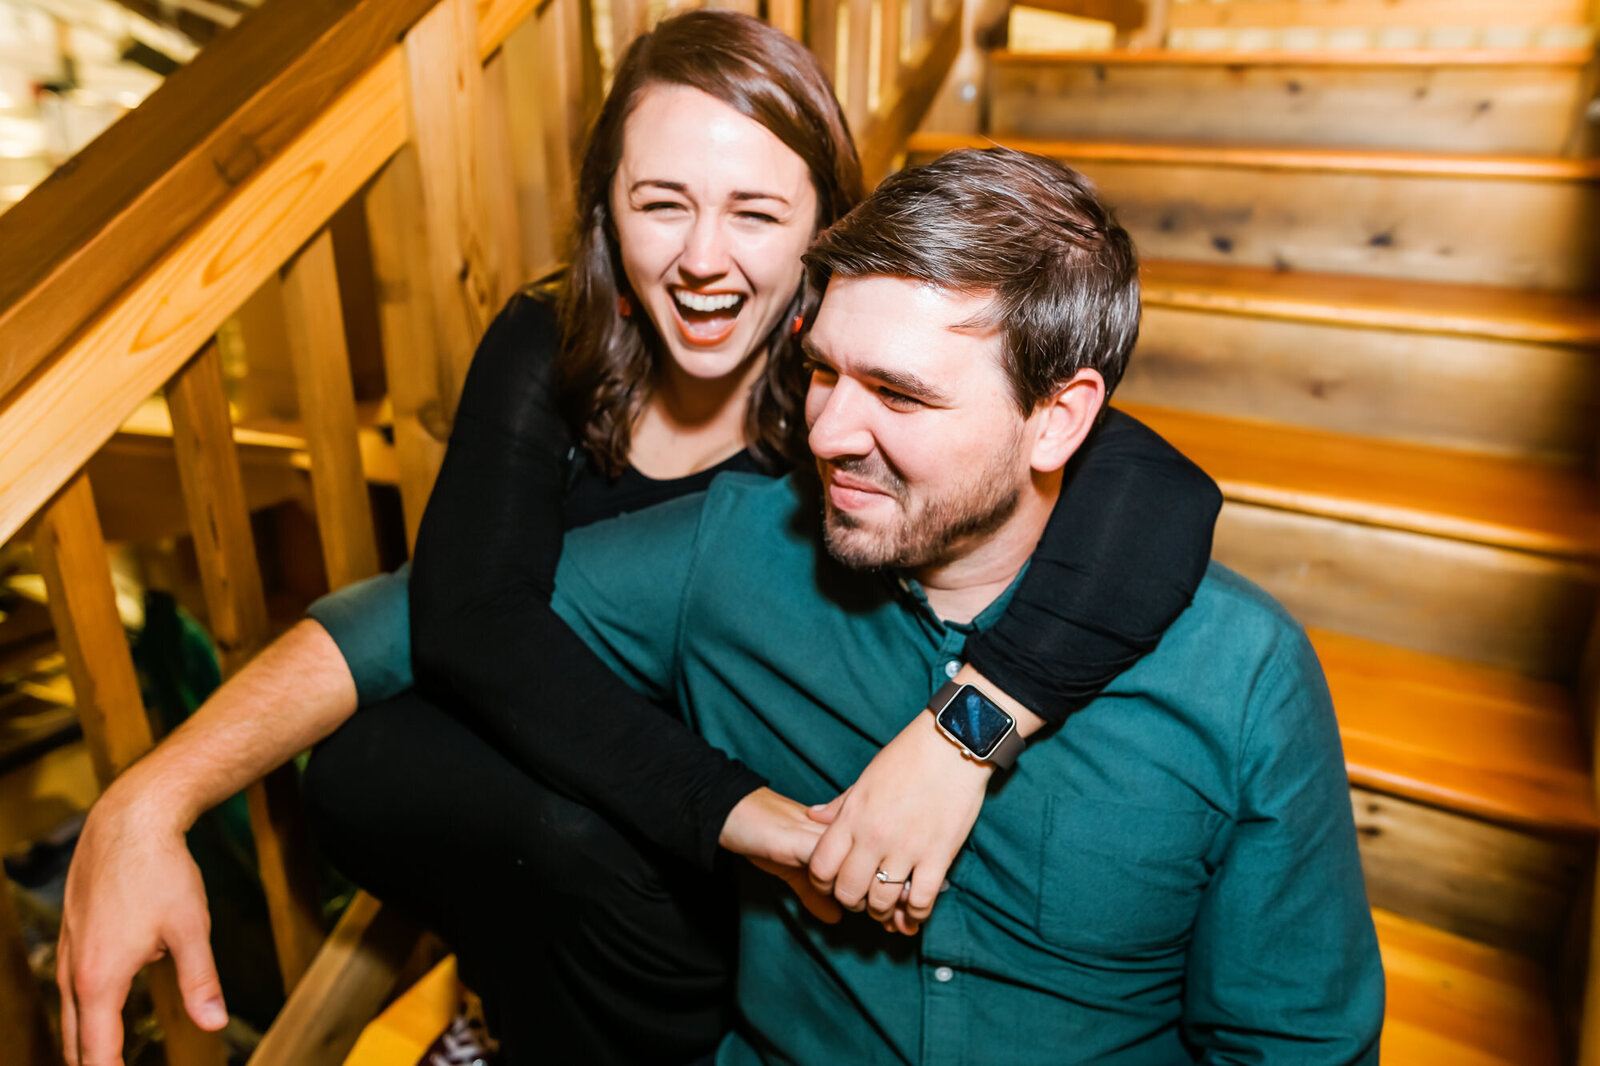 Candid engagement photo of a couple sitting together and laughing at Civil Life Brewery in St. Louis